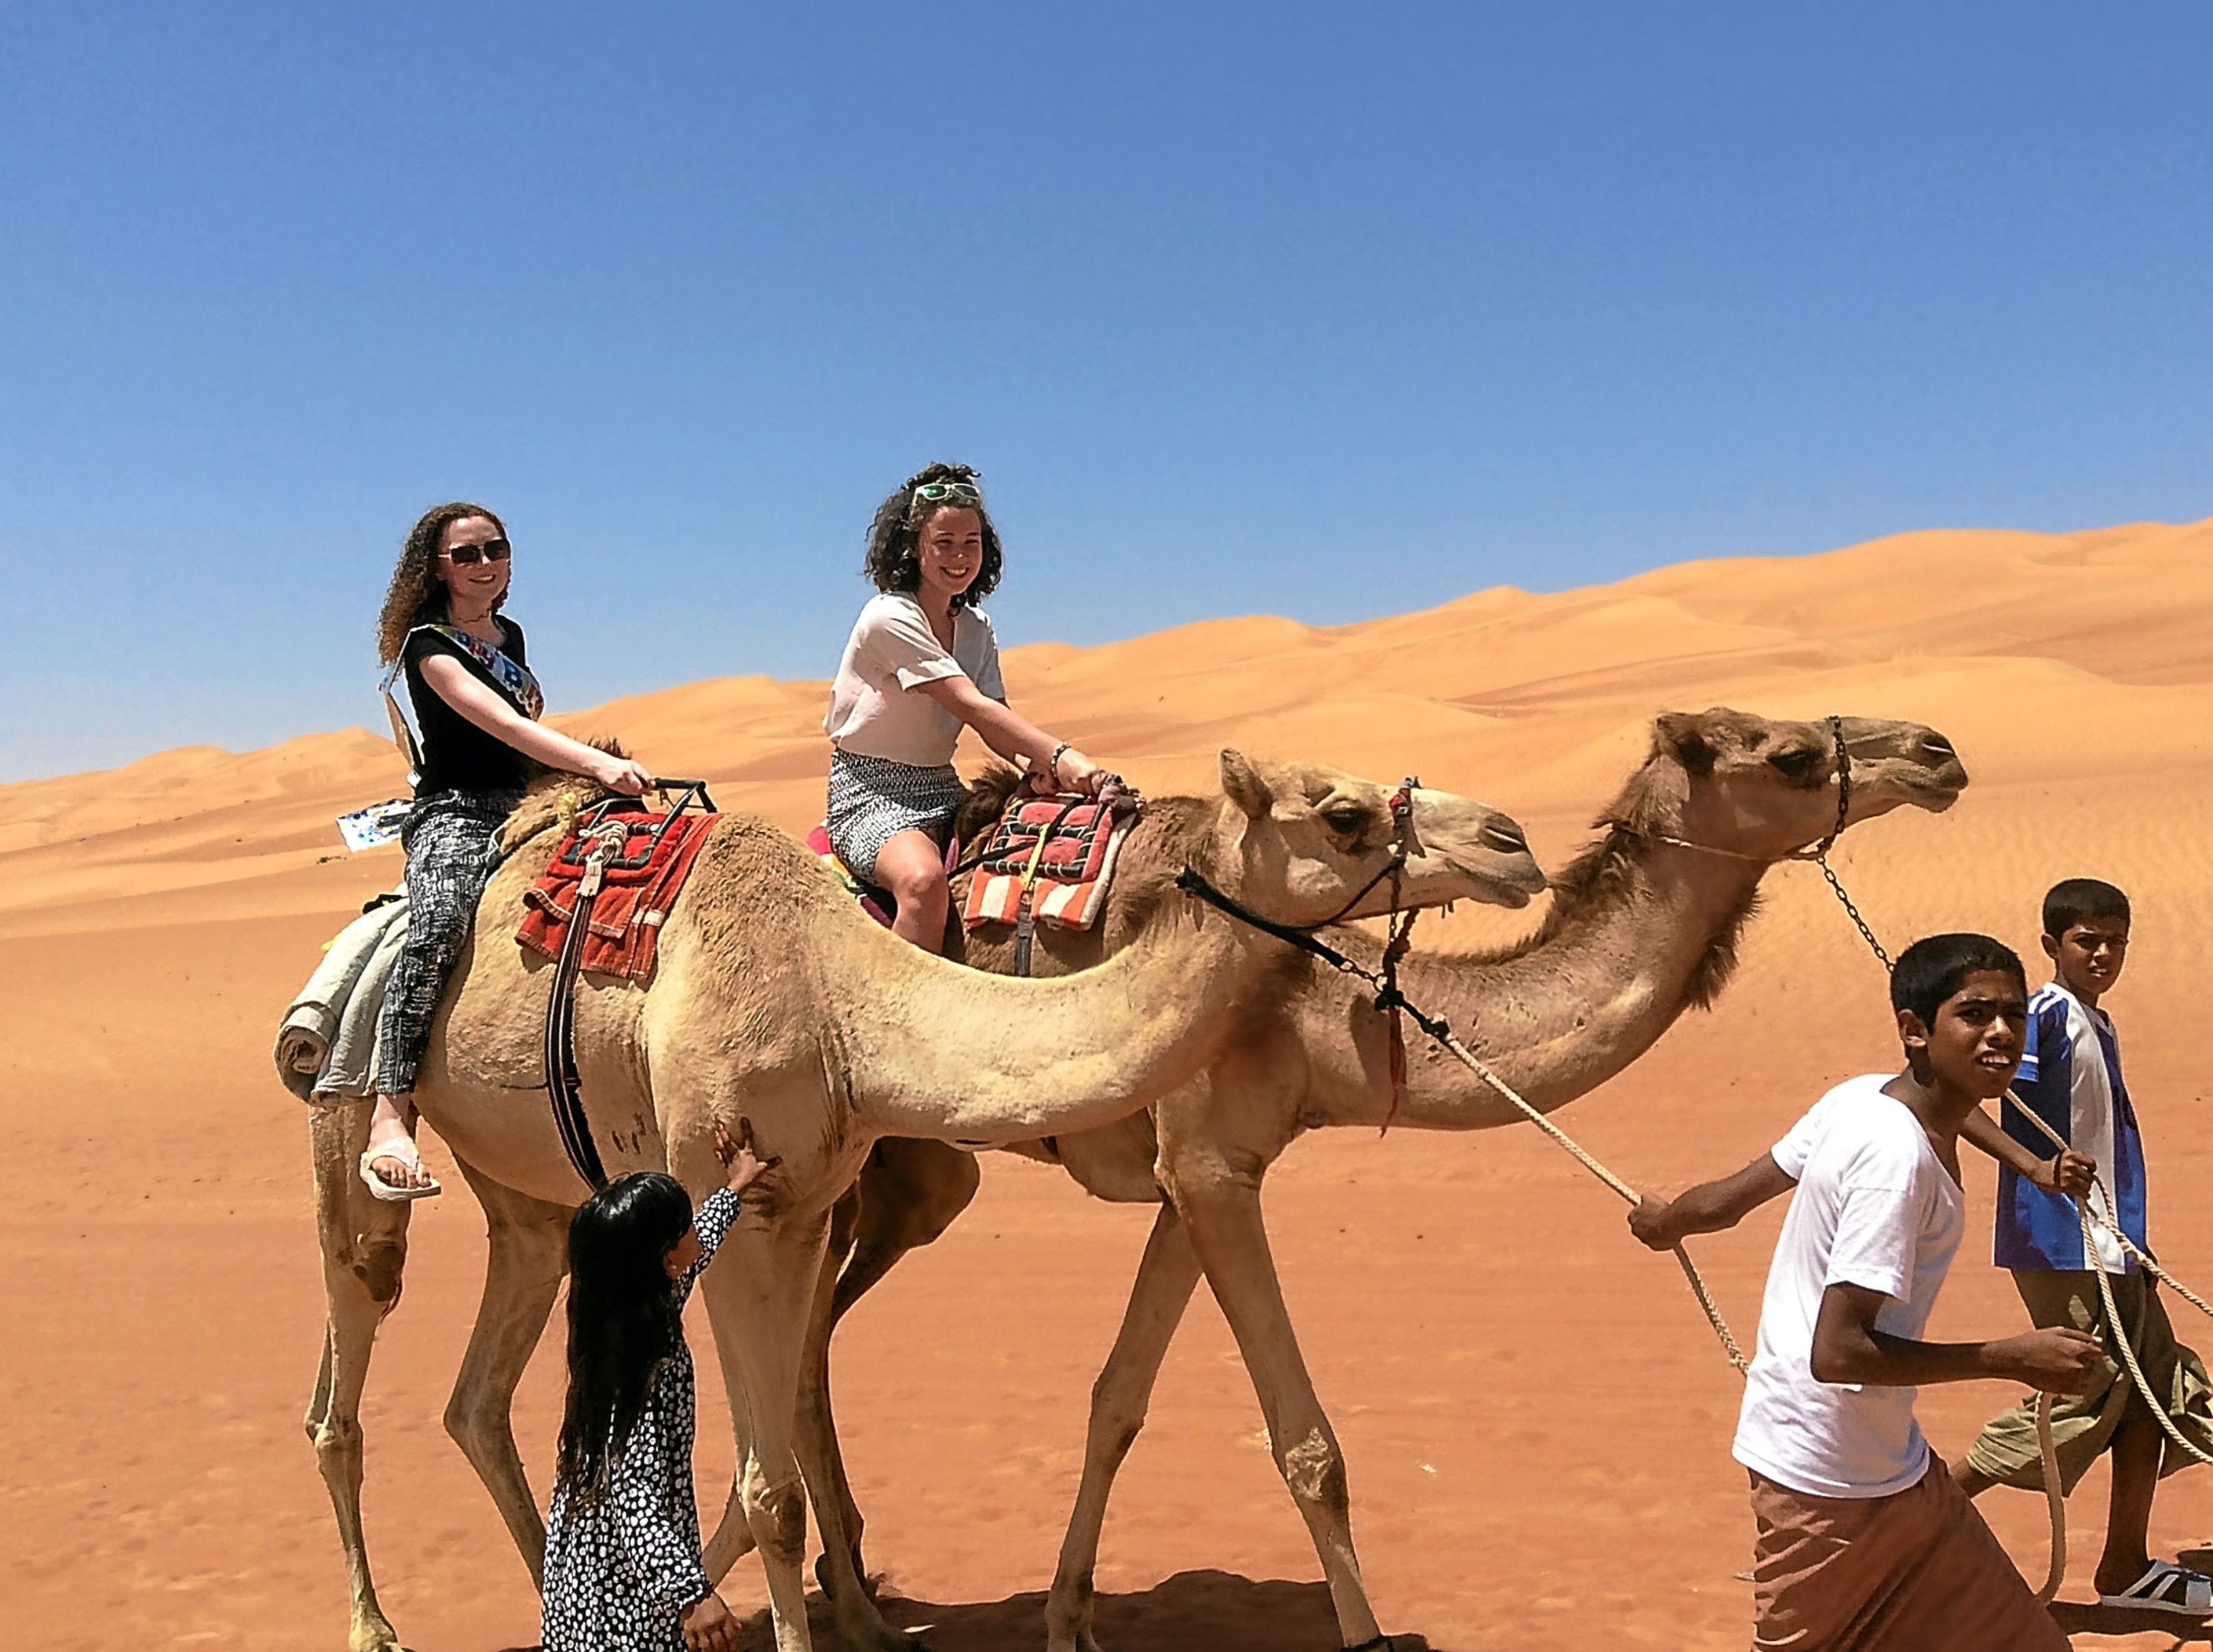 Pupils Abigail Johnston, left, and Zoe Morton, right, enjoy a camel ride.